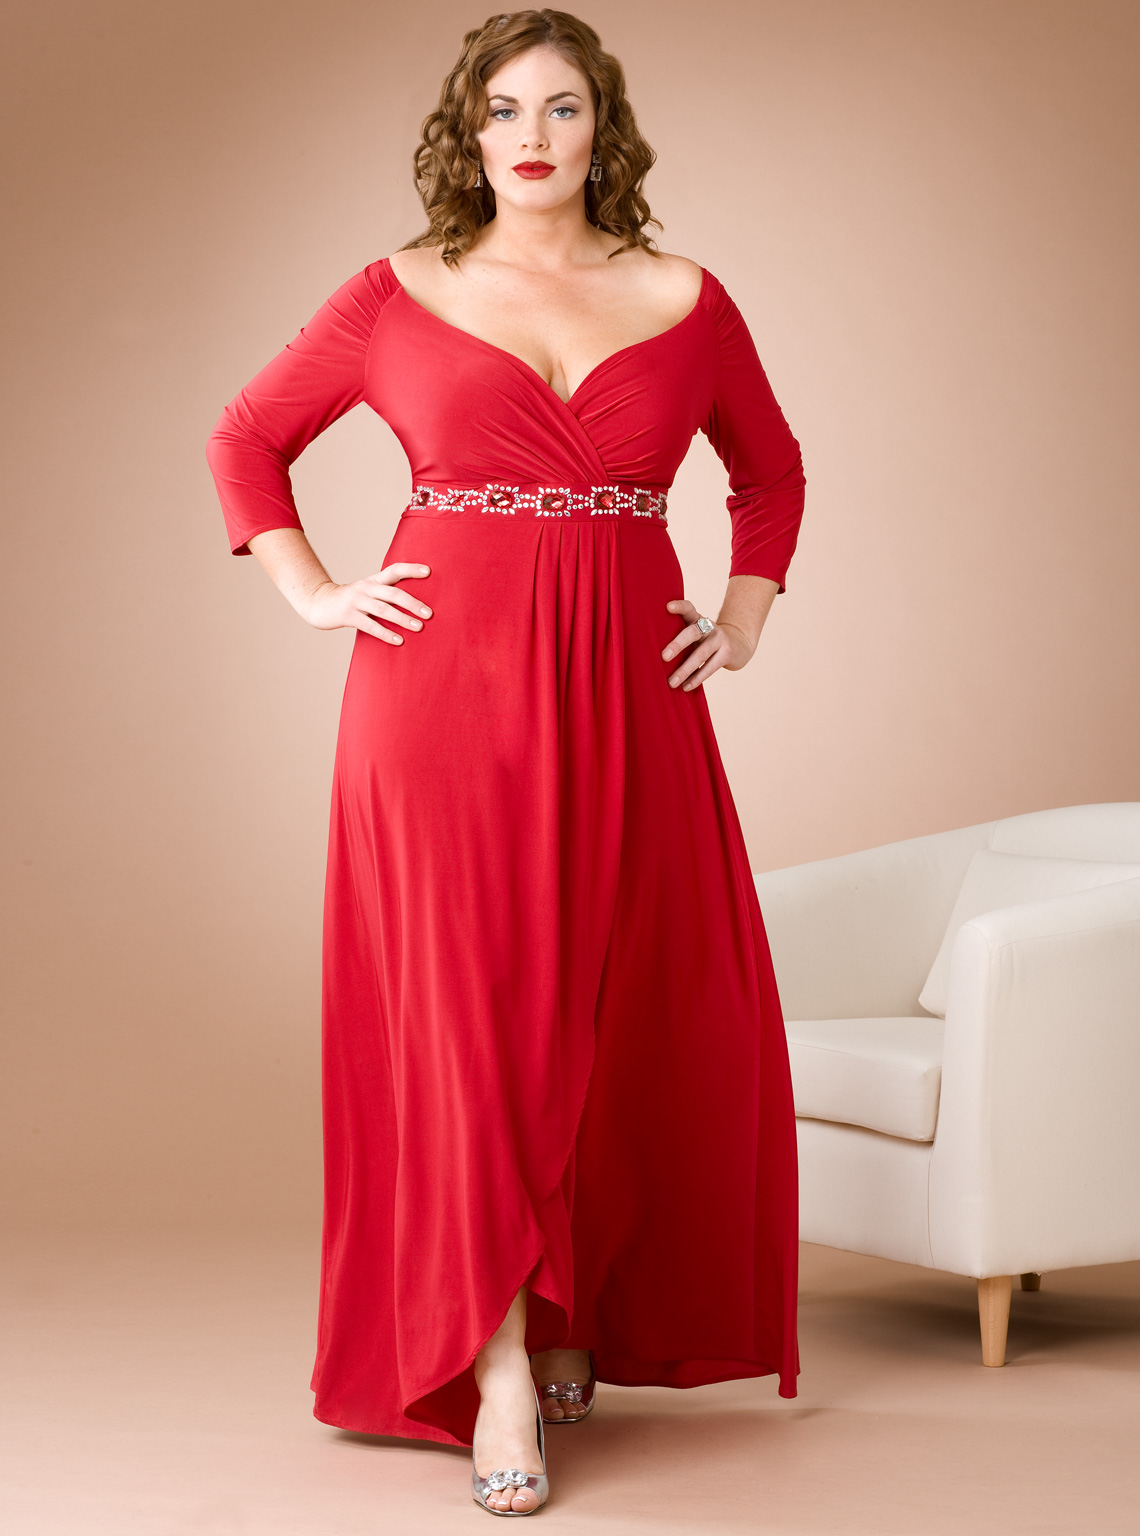 Bridesmaid dresses 2013 with sleeves uk purple 2014 plus size plus size bridesmaid dresses ombrellifo Gallery